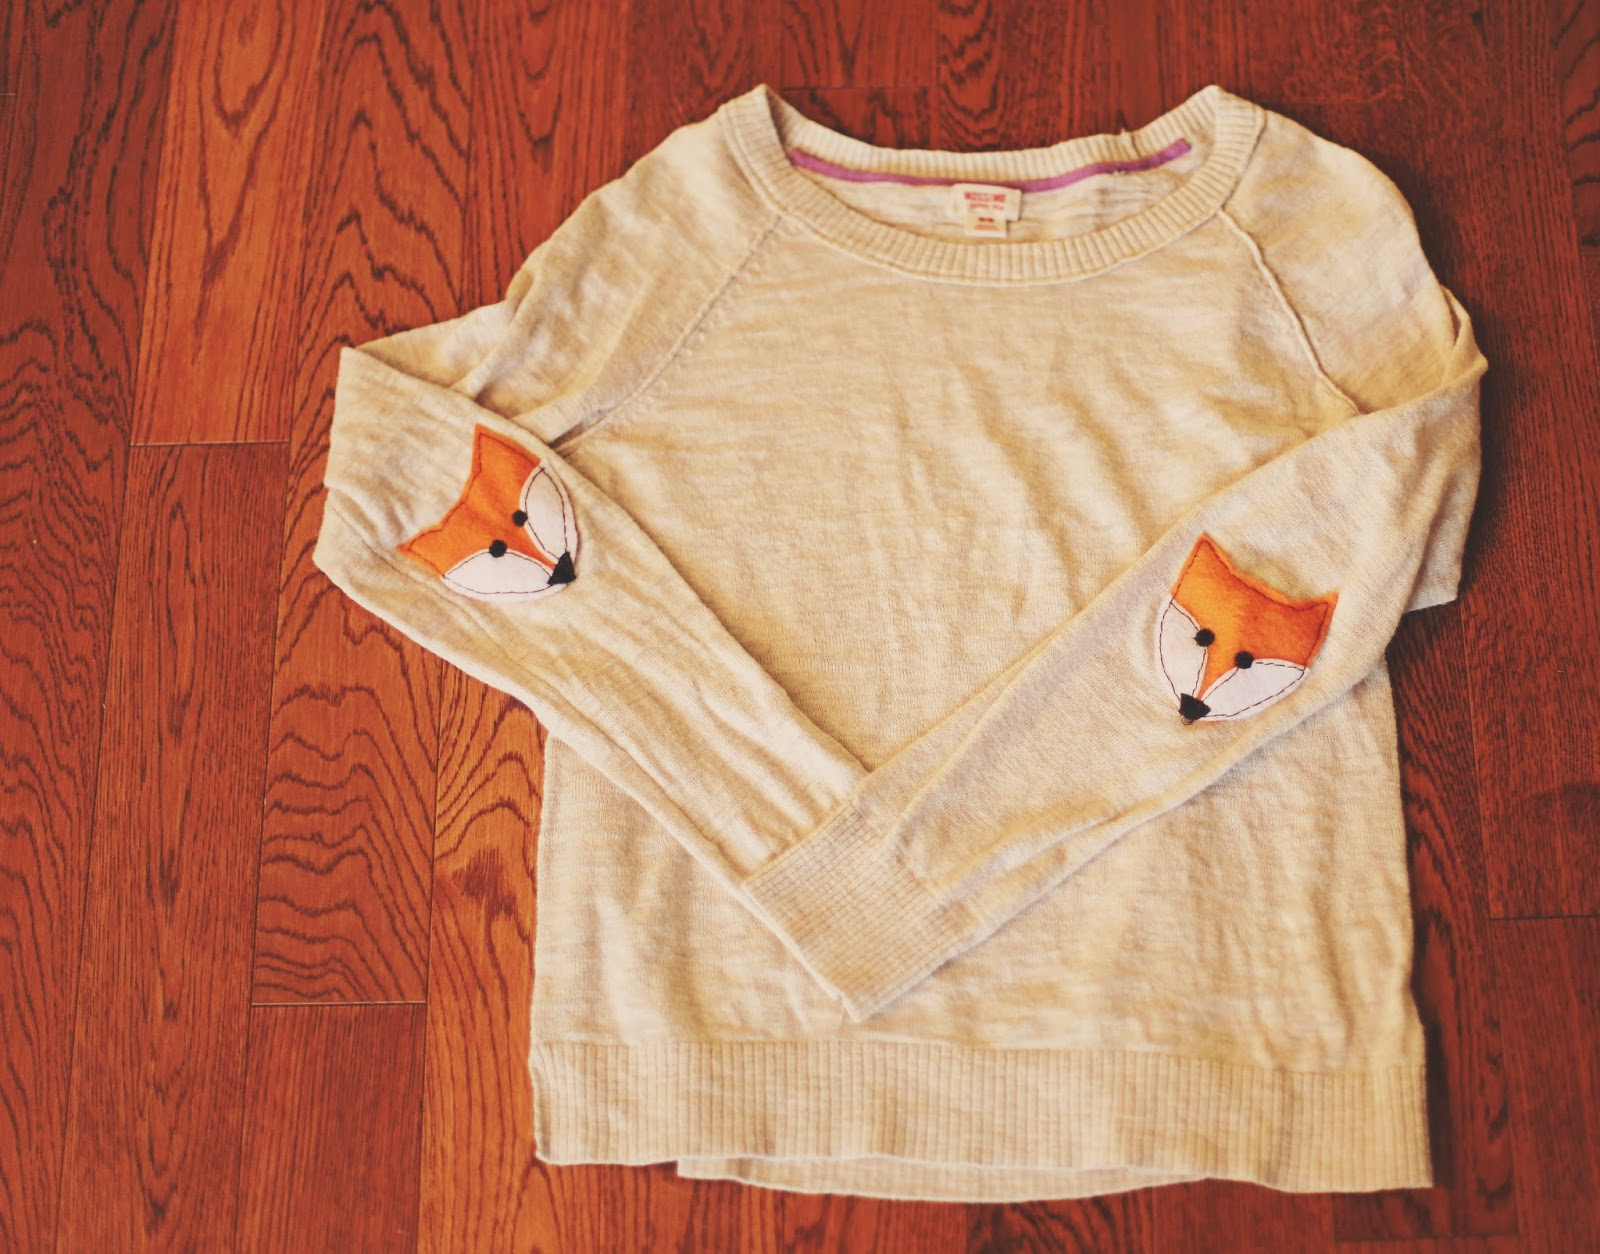 Fox sweater diy adventures in crafting by katyandzucchini fox sweater diy maxwellsz